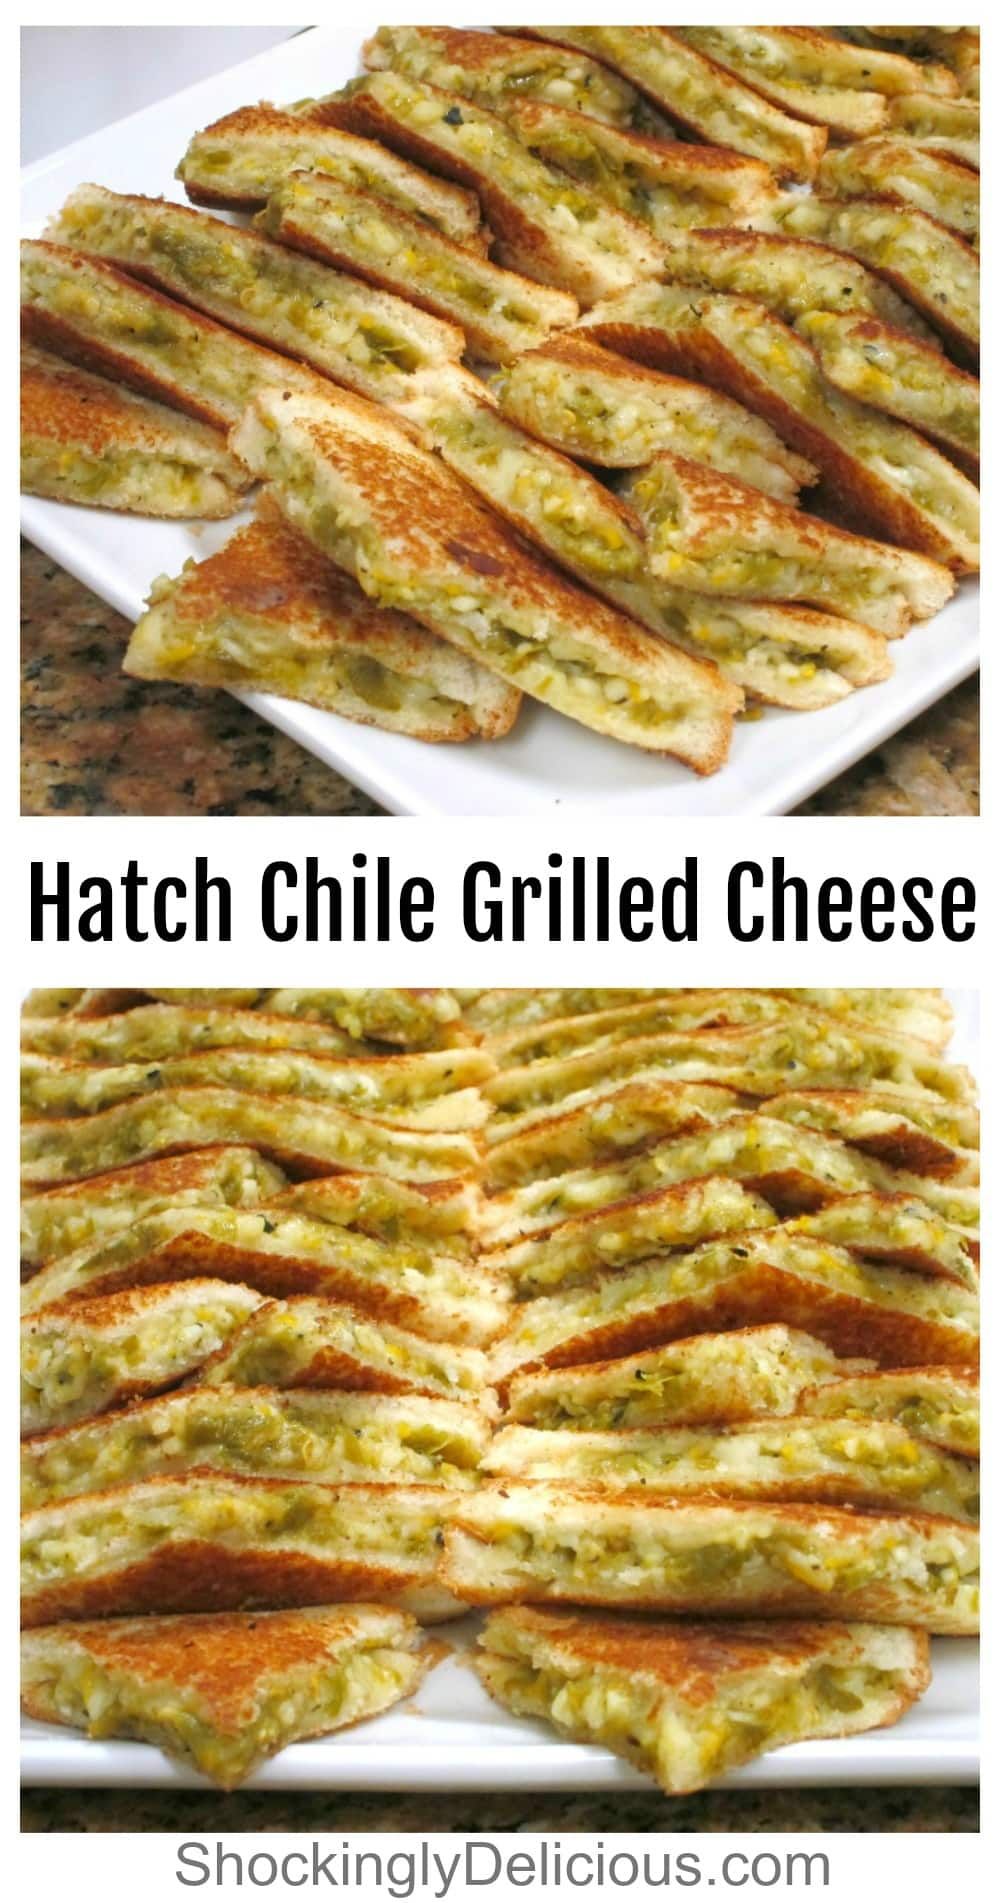 Harch Chile Grilled Cheese Sandwich photo collage